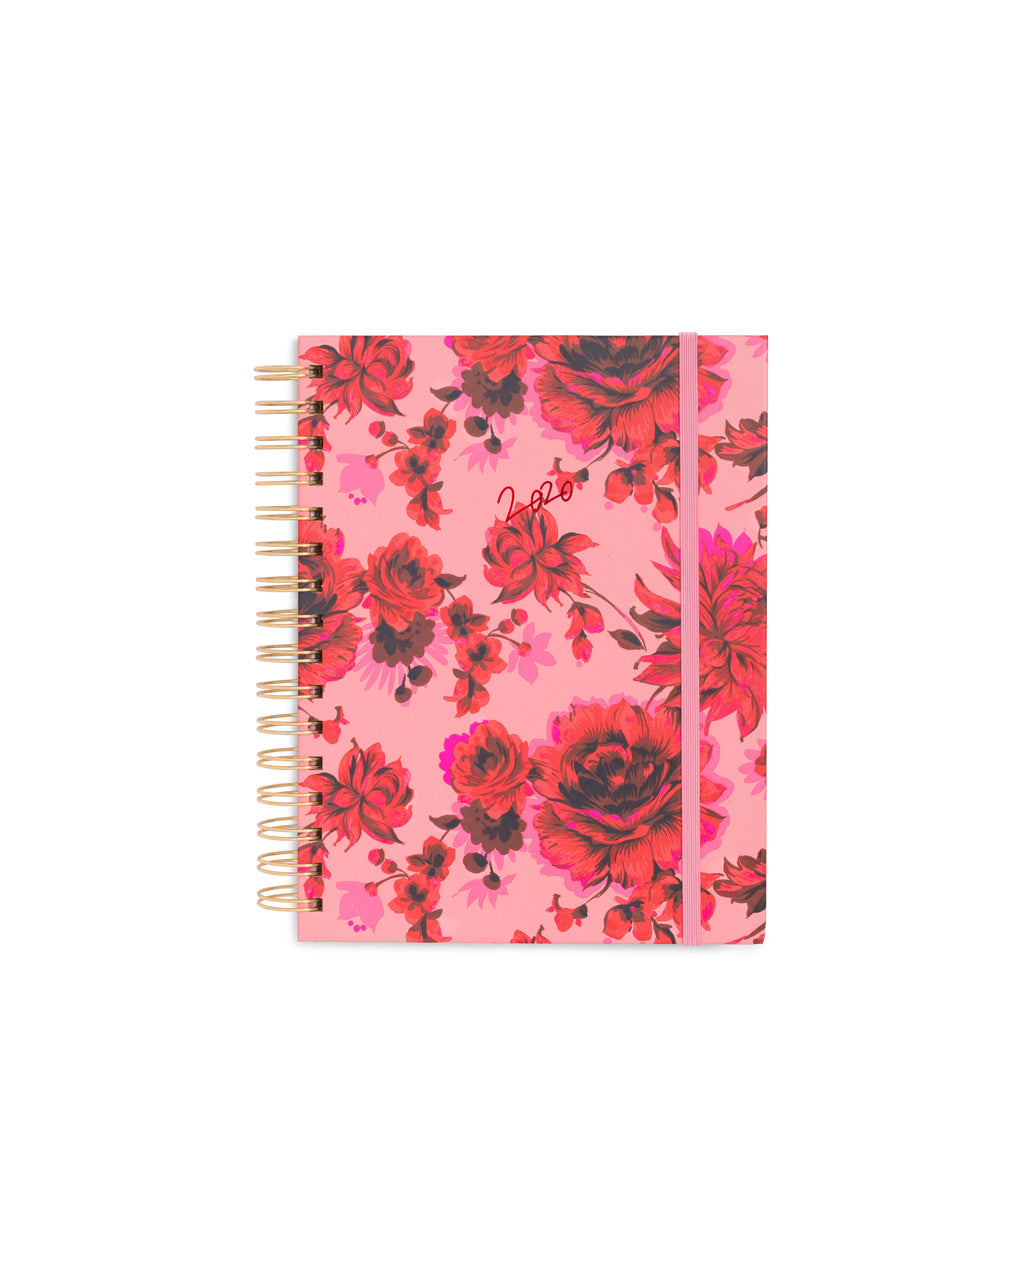 This Medium 12-Month Annual Planner comes in a matte-laminated, pink-floral hard cover.